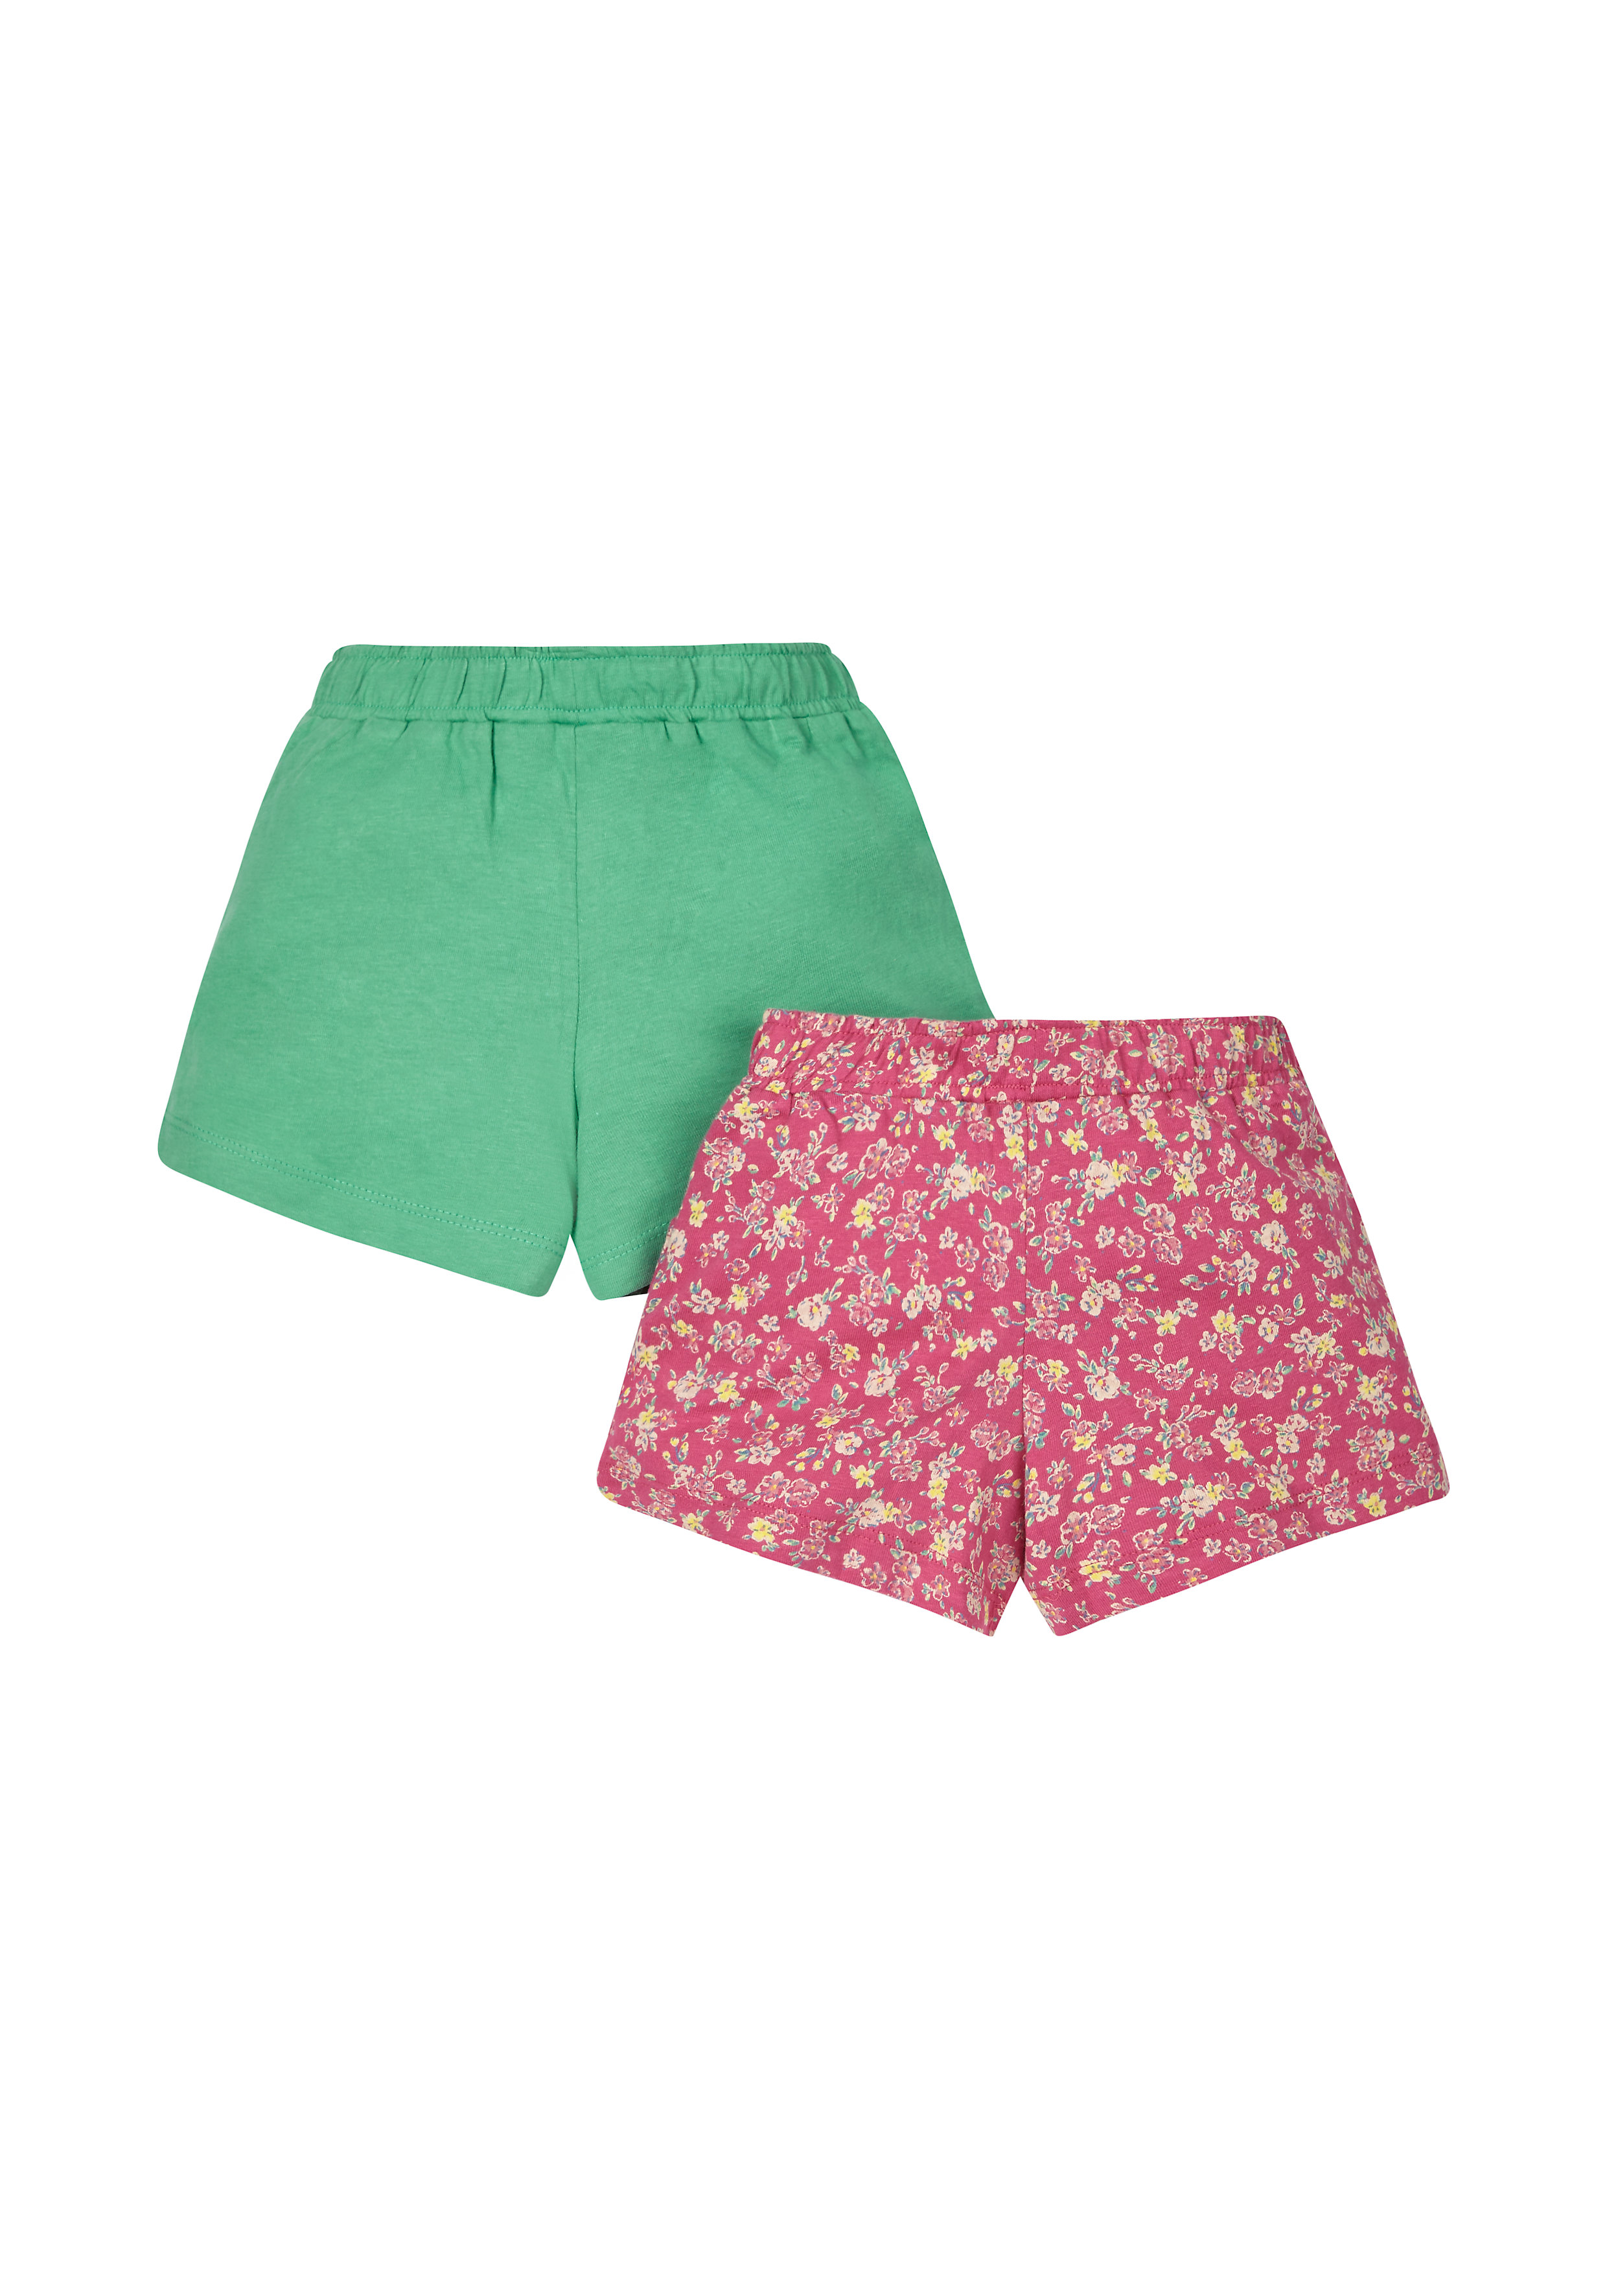 Mothercare | Girls Green And Floral Shorts - 2 Pack